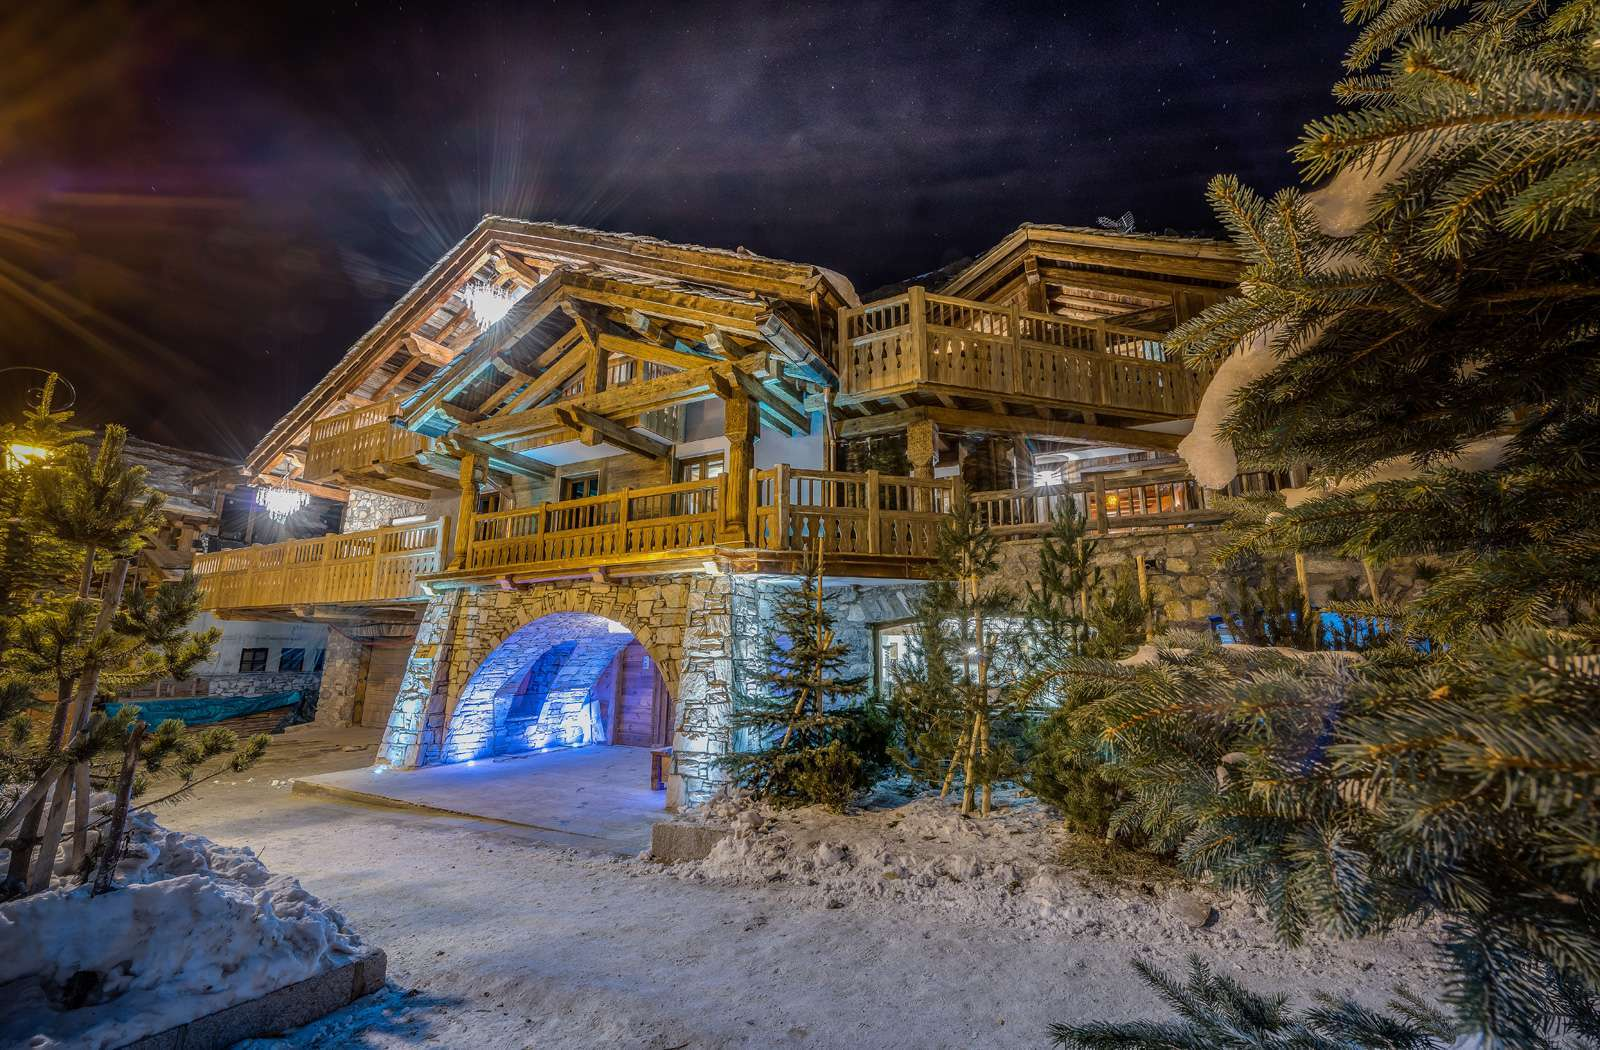 Kings-avenua-val-disere-snow-chalet-hammam-swimming-pool-childfriendly-parking-cinema-boot-heaters-fireplace-gym-wine-cellar-area-val-disere-006-1